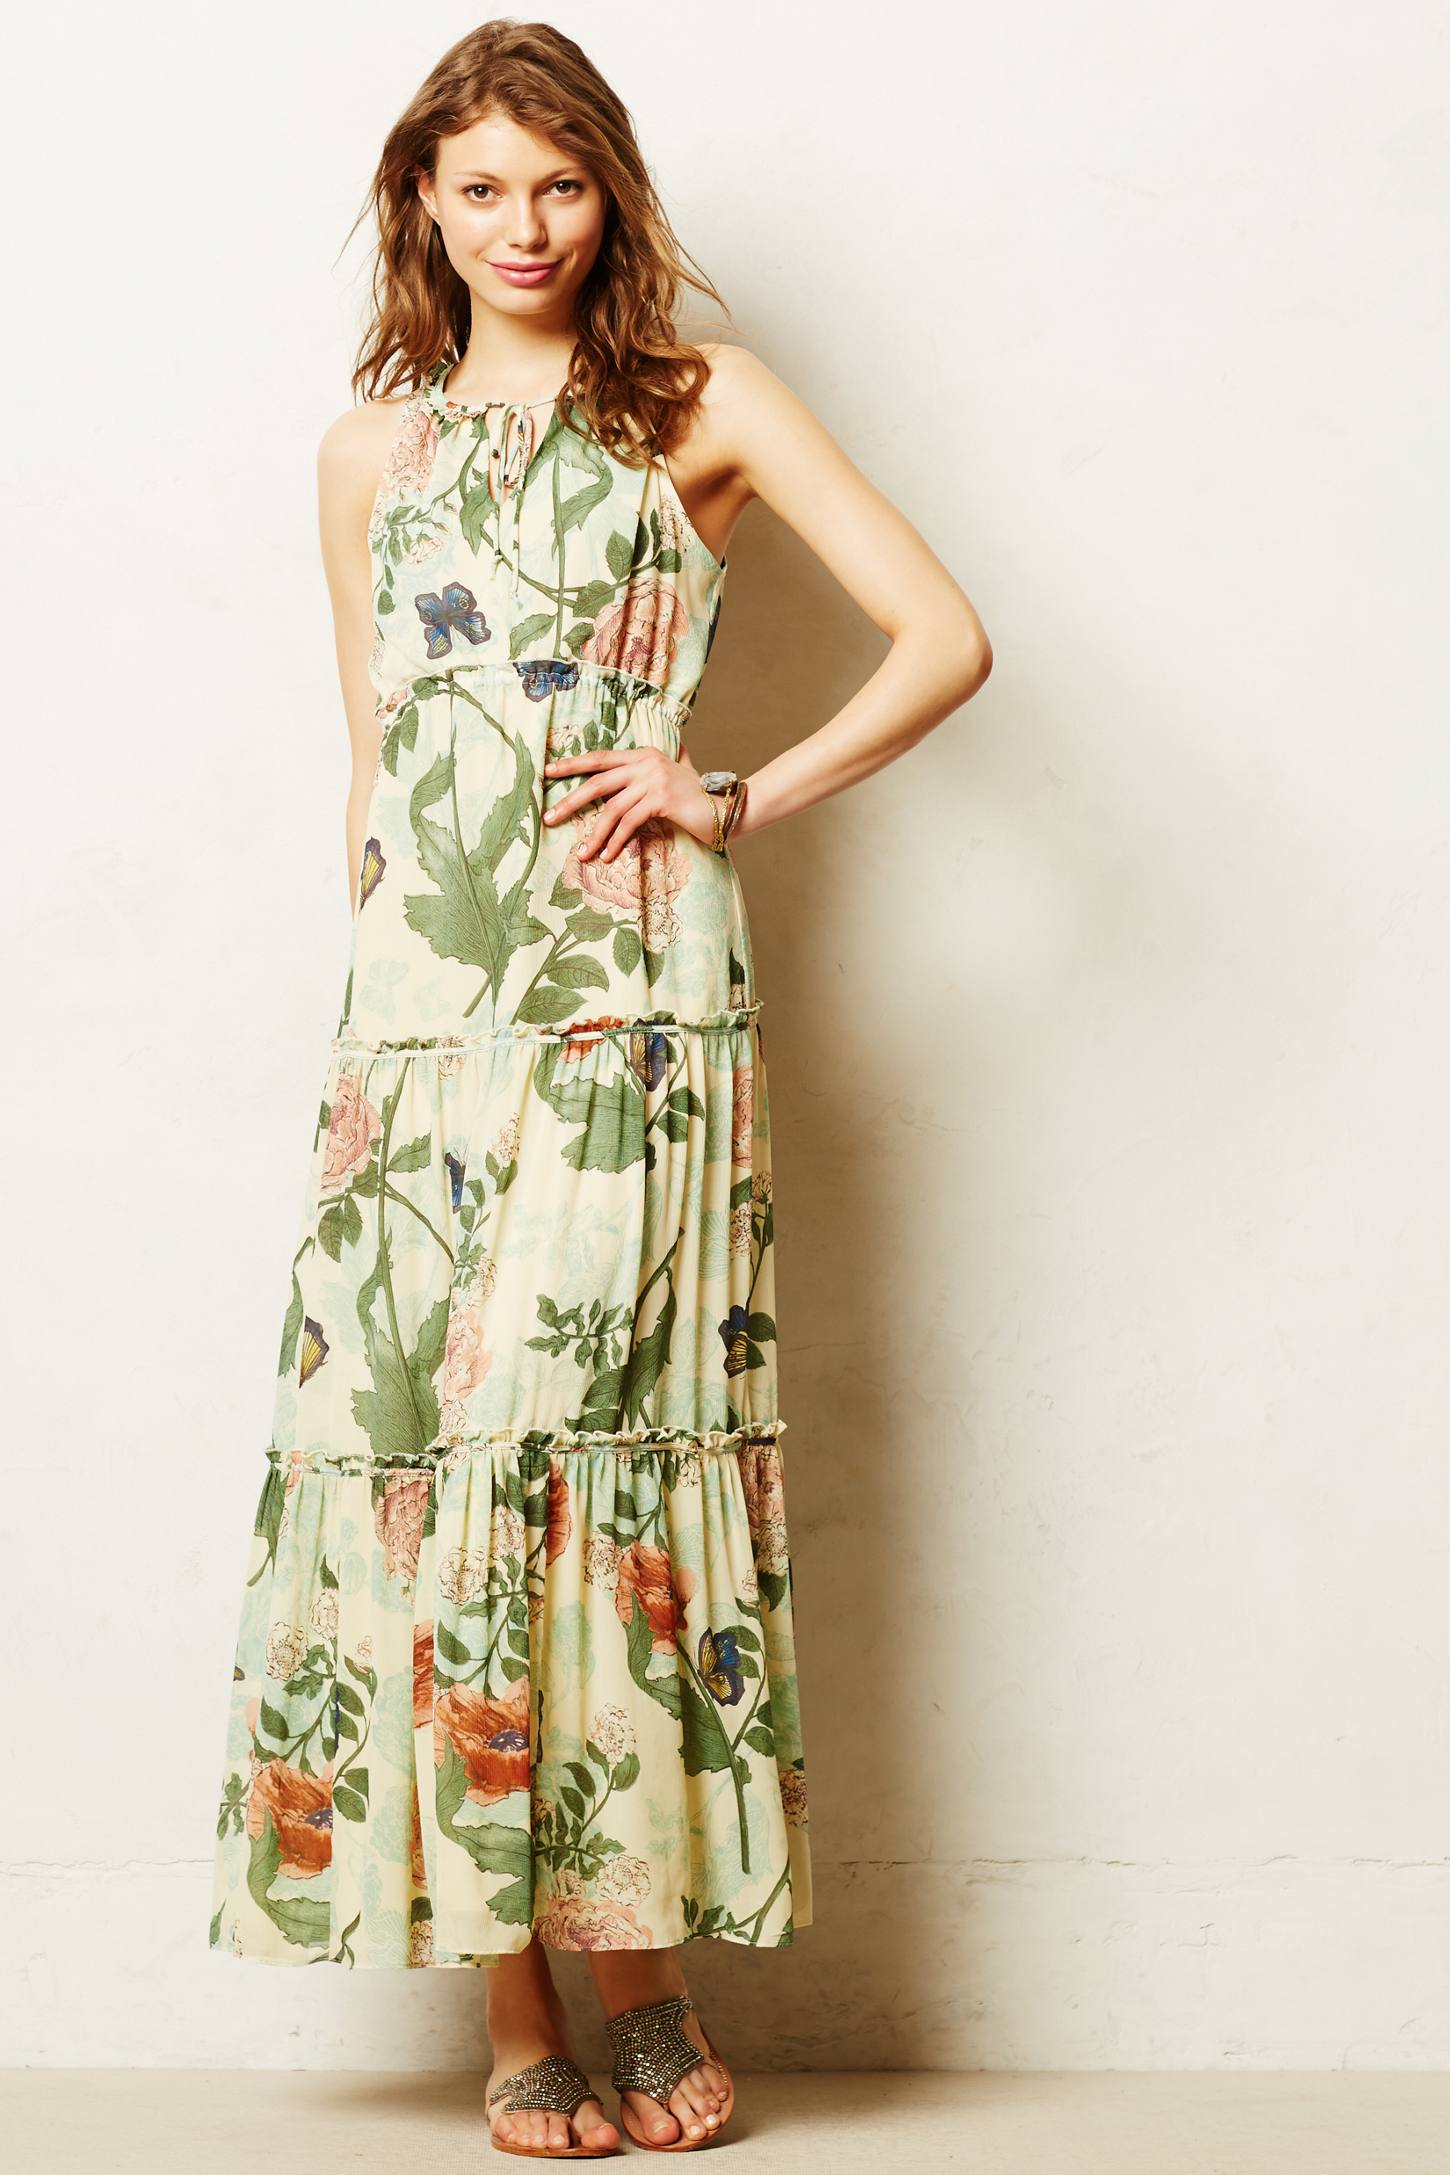 Lyst Maeve Maravilla Maxi Dress In Green